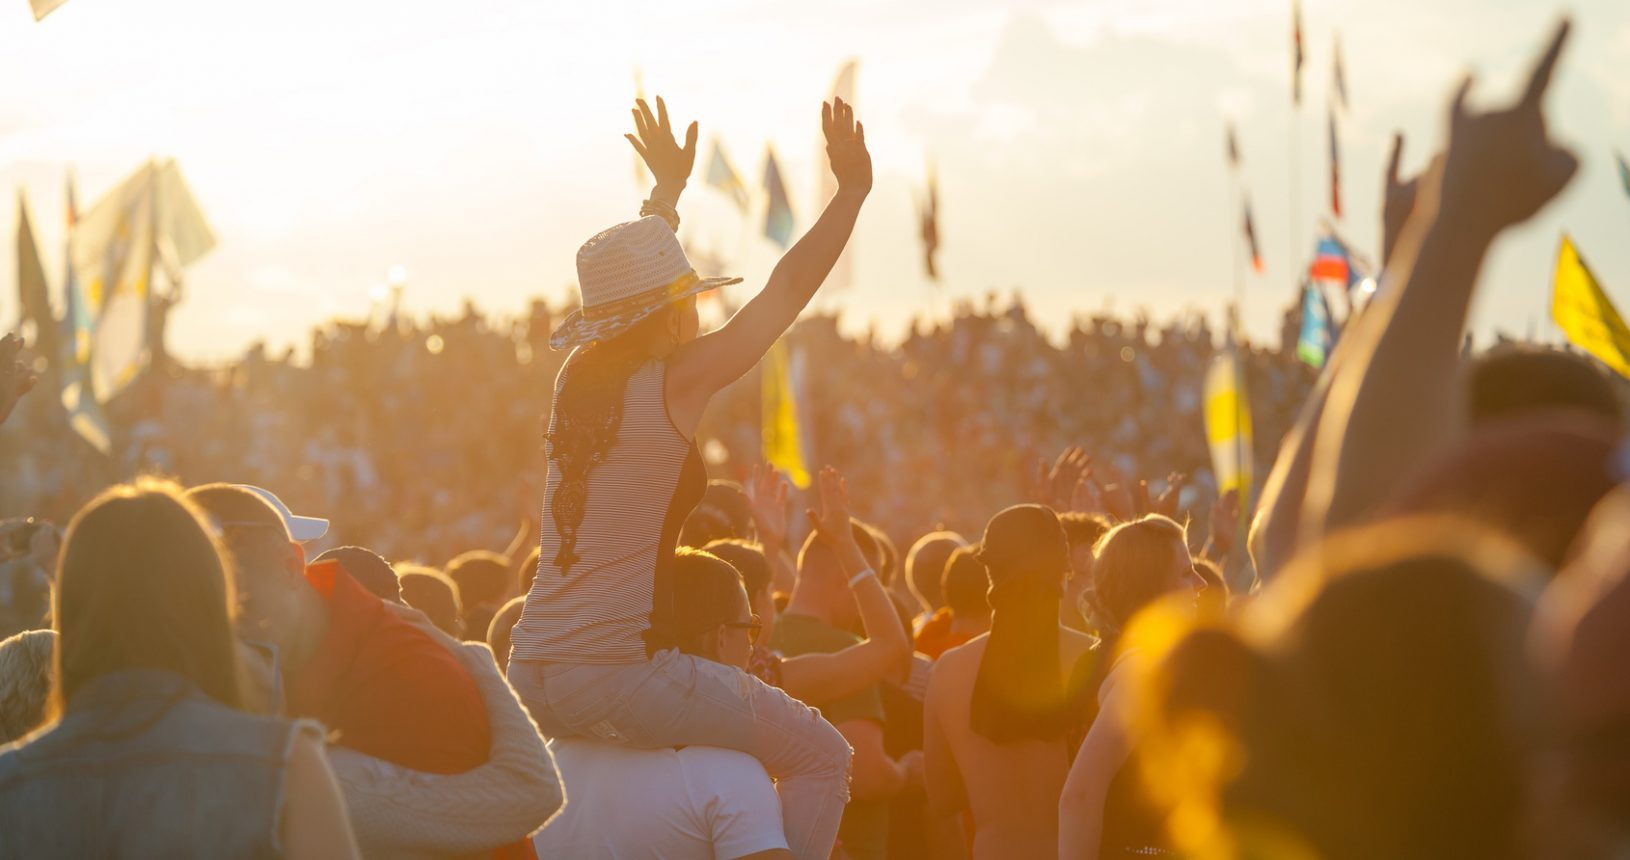 """BIG ZAVIDOVO, RUSSIA - JULY 5: People cheering at open-air rock festival """"Nashestvie"""" on July 5, 2014 in Big Zavidovo, Russia. """"Nashestvie"""" is the biggest rock festival in Russia, more 200000 visitors"""